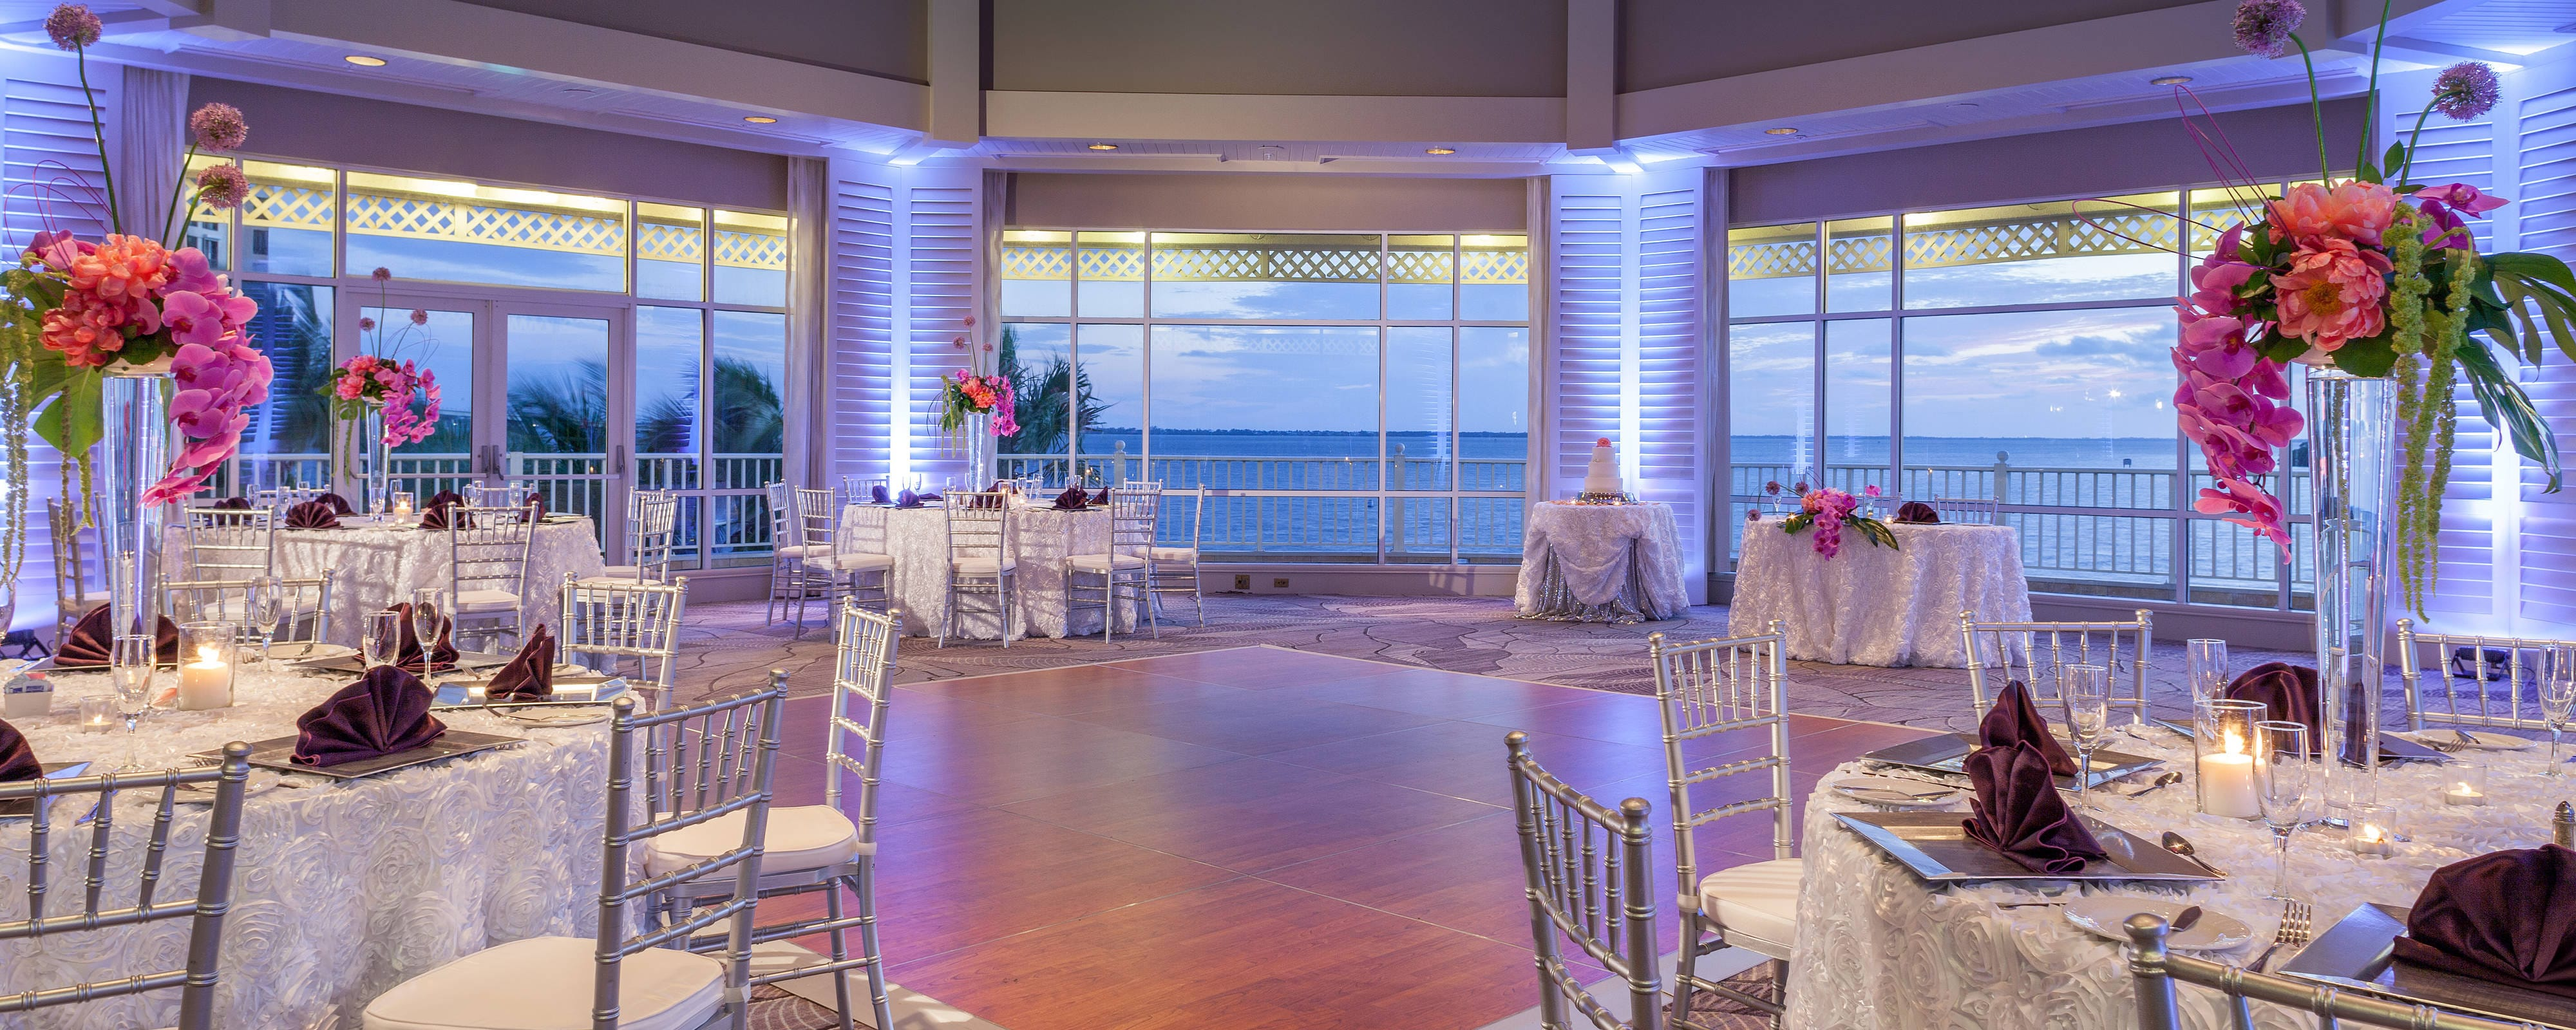 Fort Myers Wedding Venues